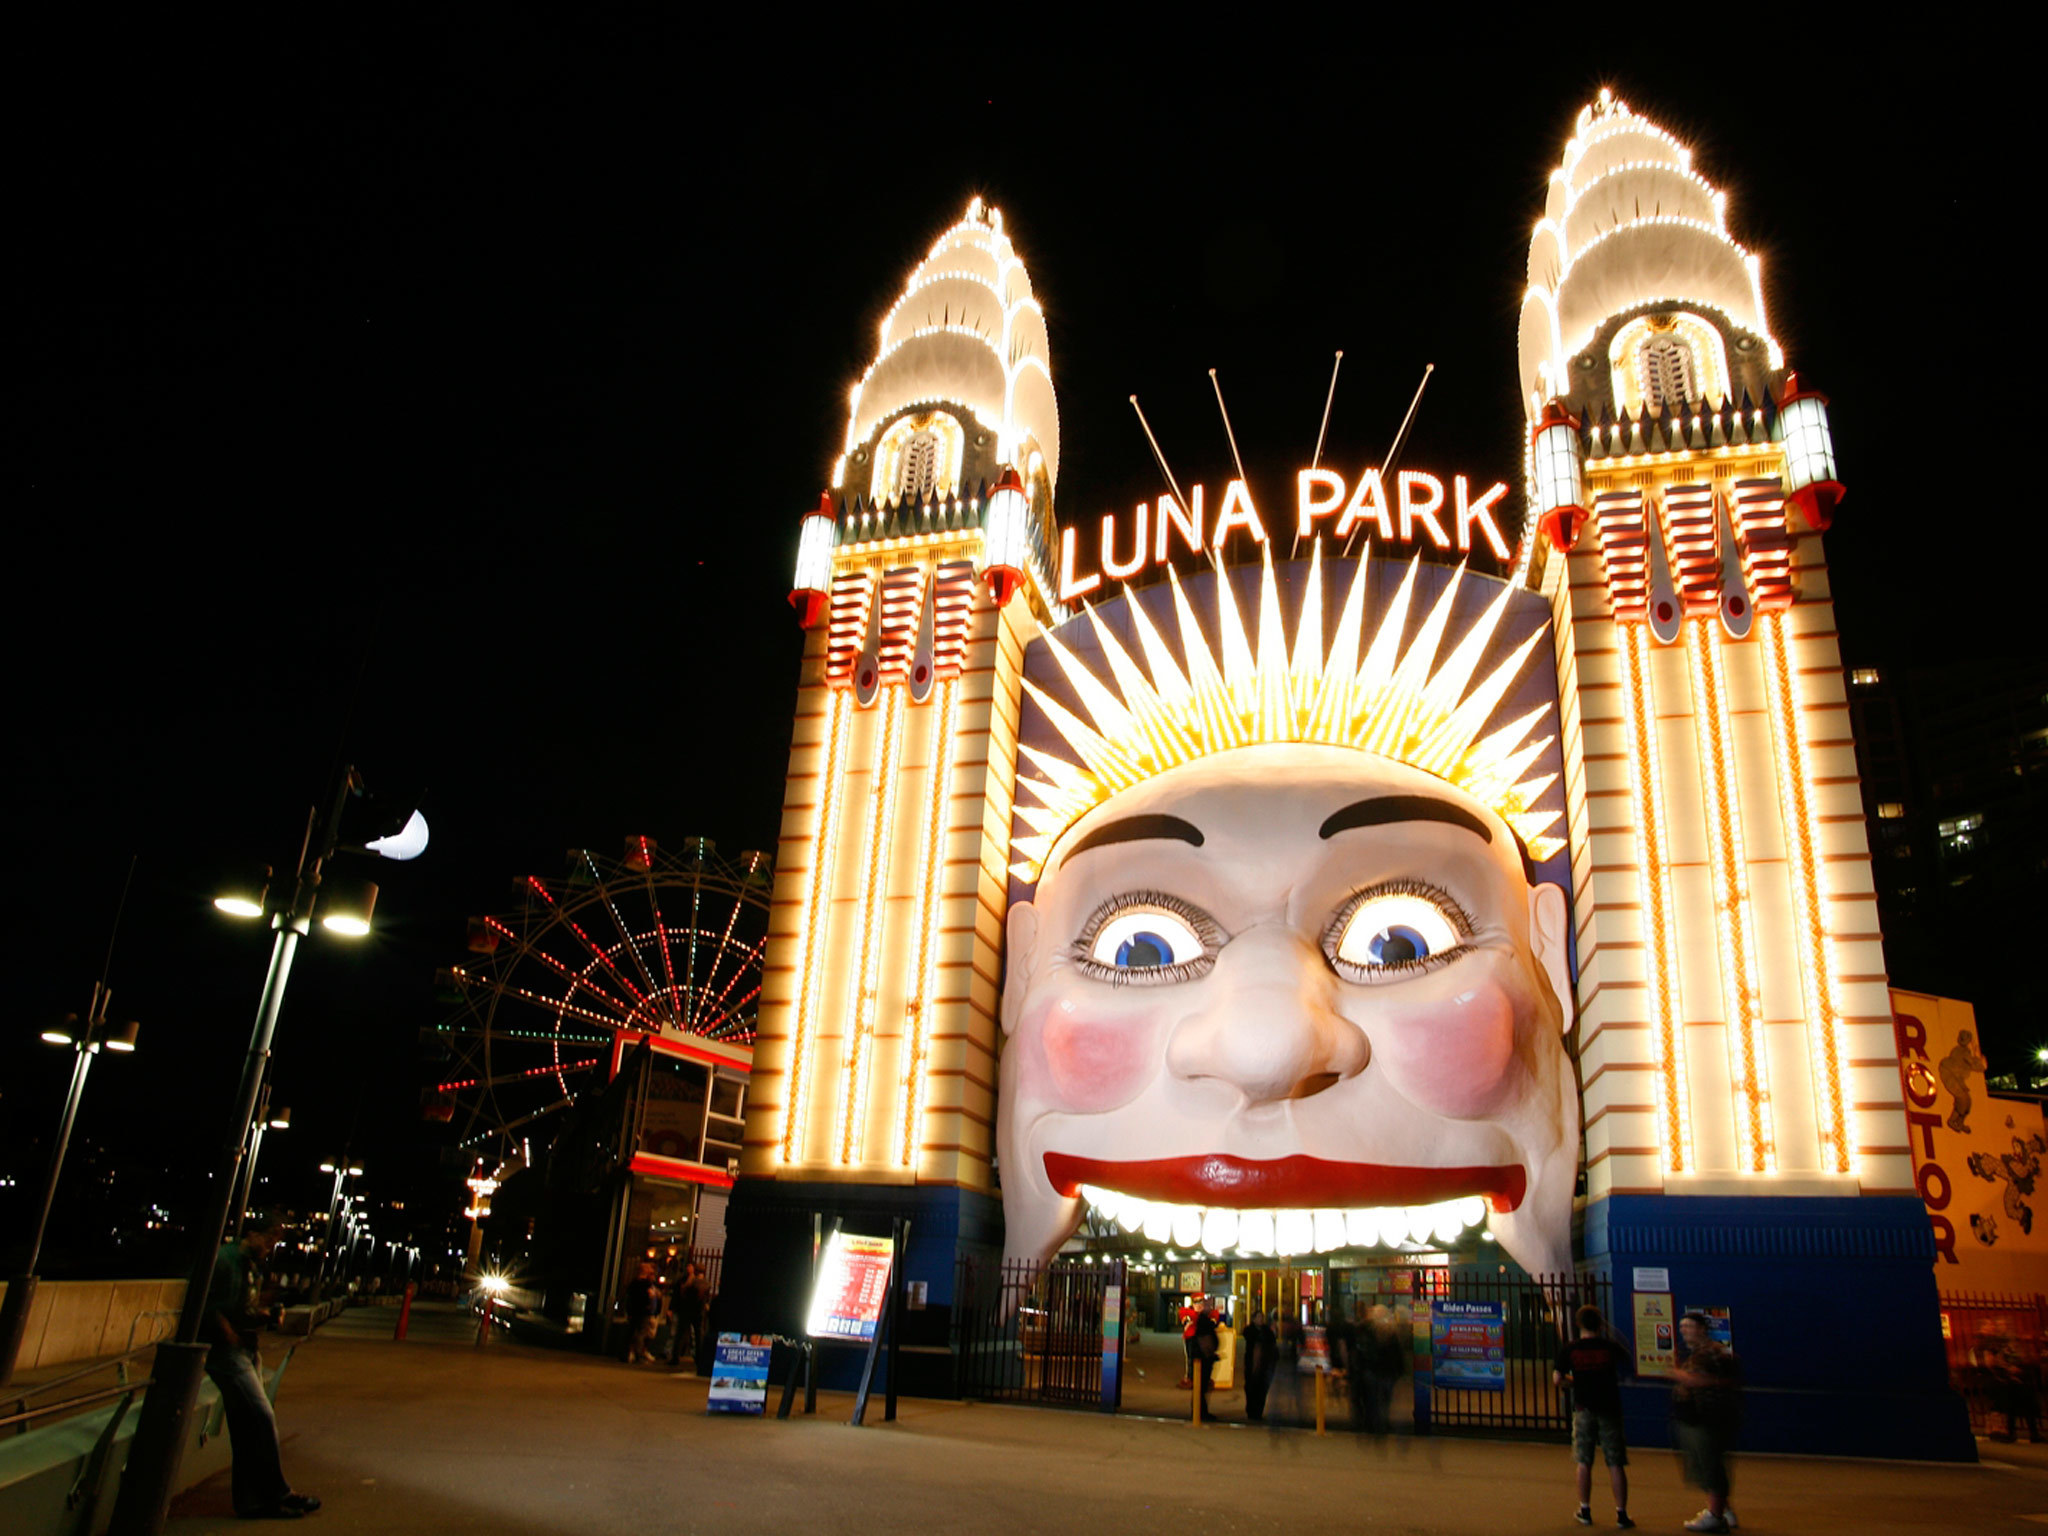 Luna Park Rooftop Cinema